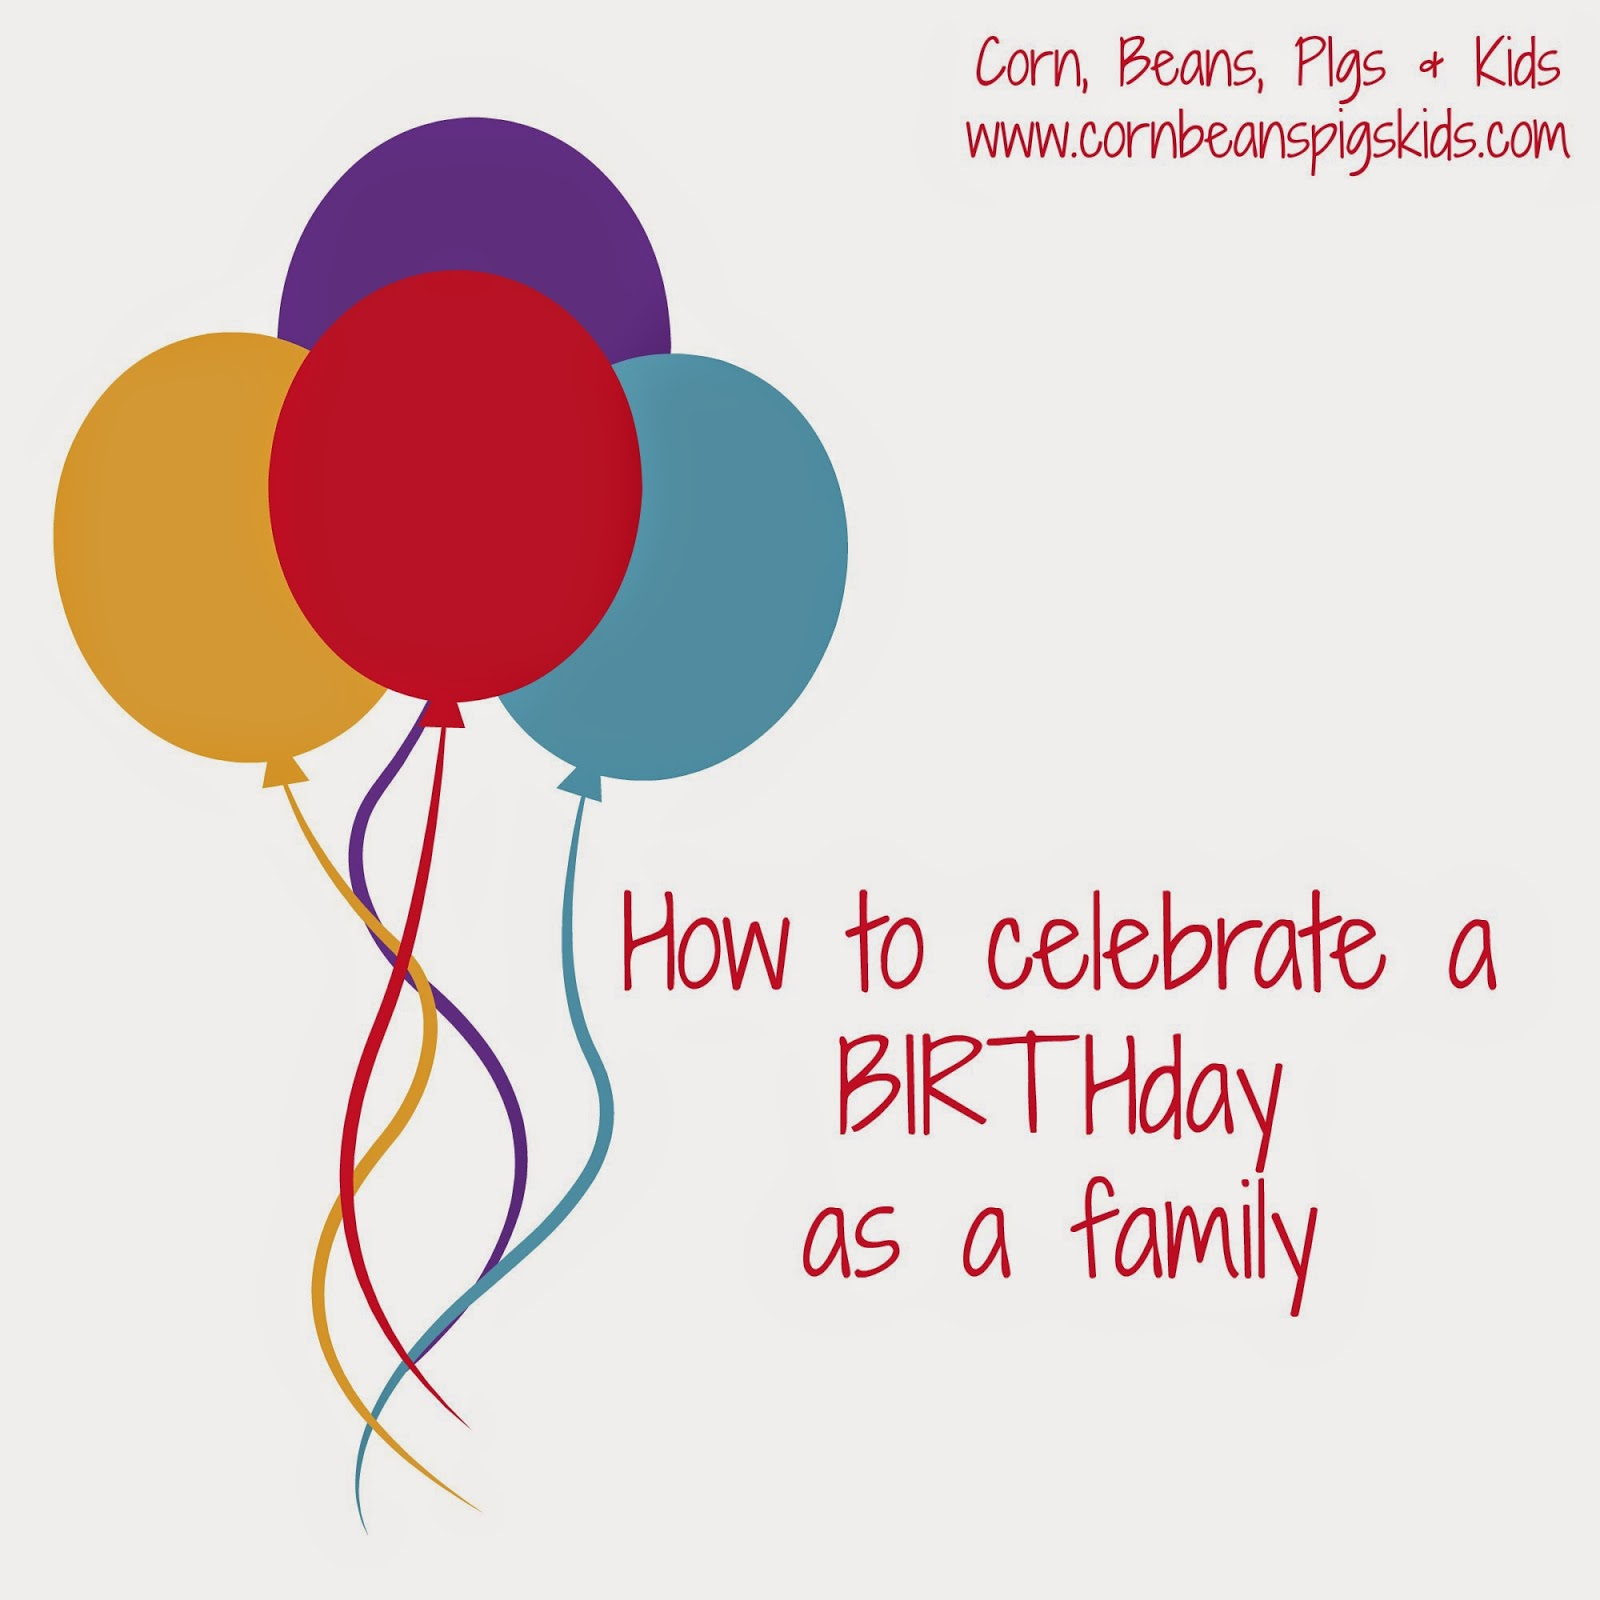 How to celebrate a BIRTHday as a family - 3 simple ways to make your older child(ren) feel special when the new baby arrives